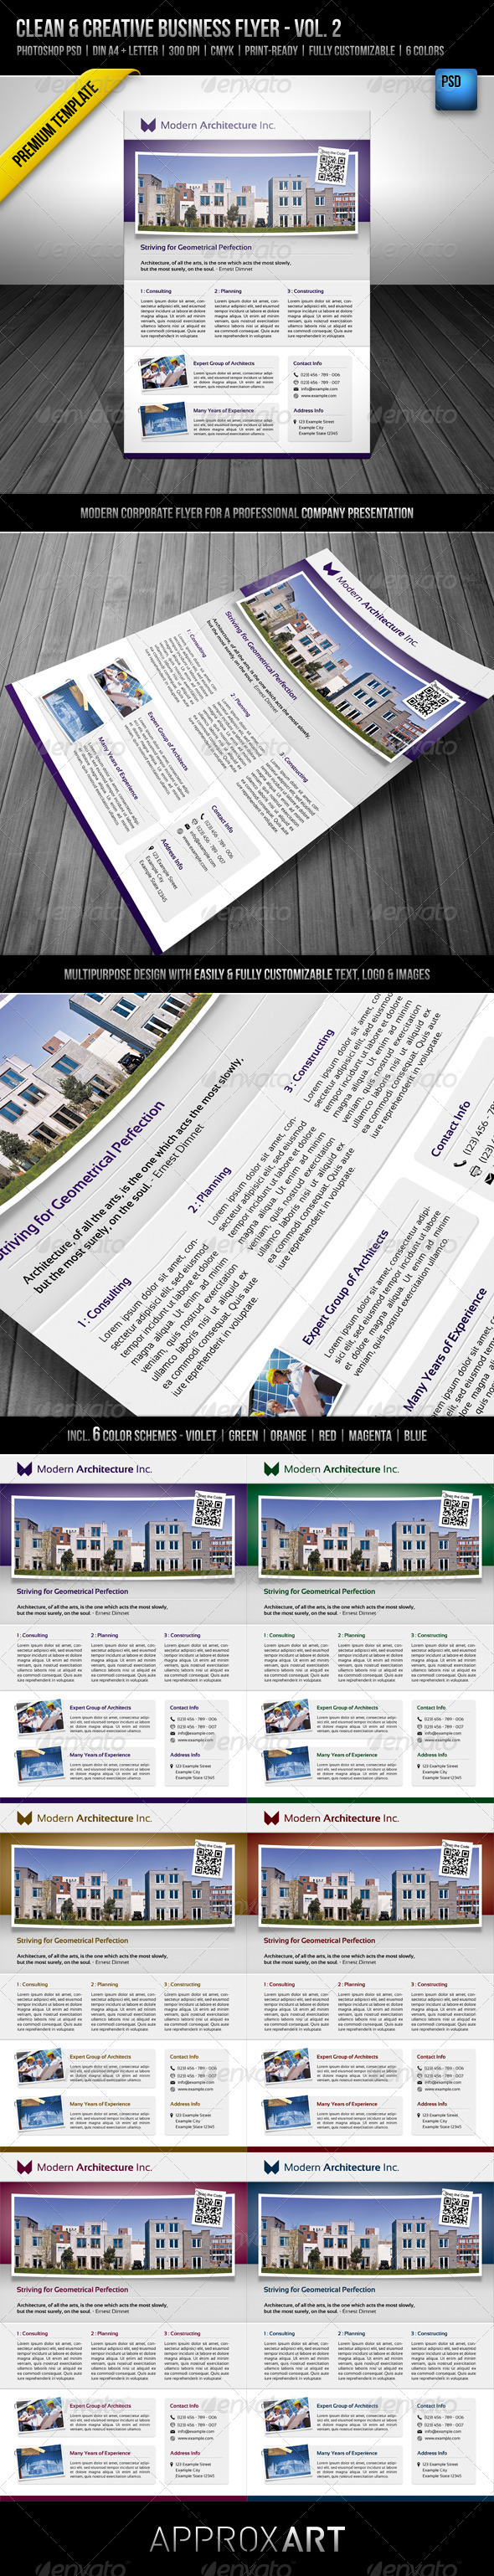 GraphicRiver Clean & Creative Business Flyer Vol 2 2771304